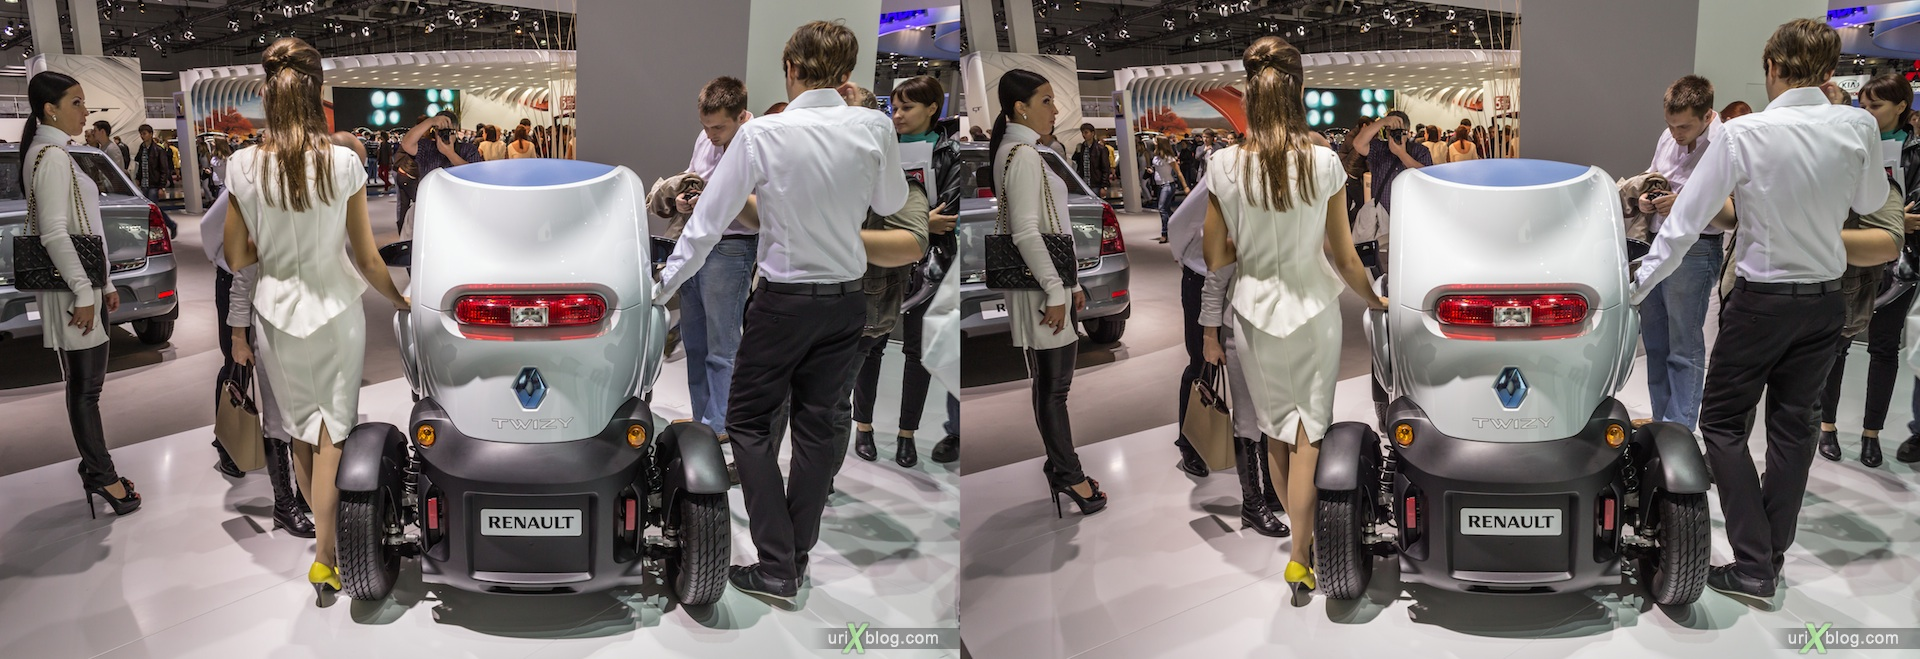 2012, Renault TWIZY ZE, Moscow International Automobile Salon, auto show, 3D, stereo pair, cross-eyed, crossview